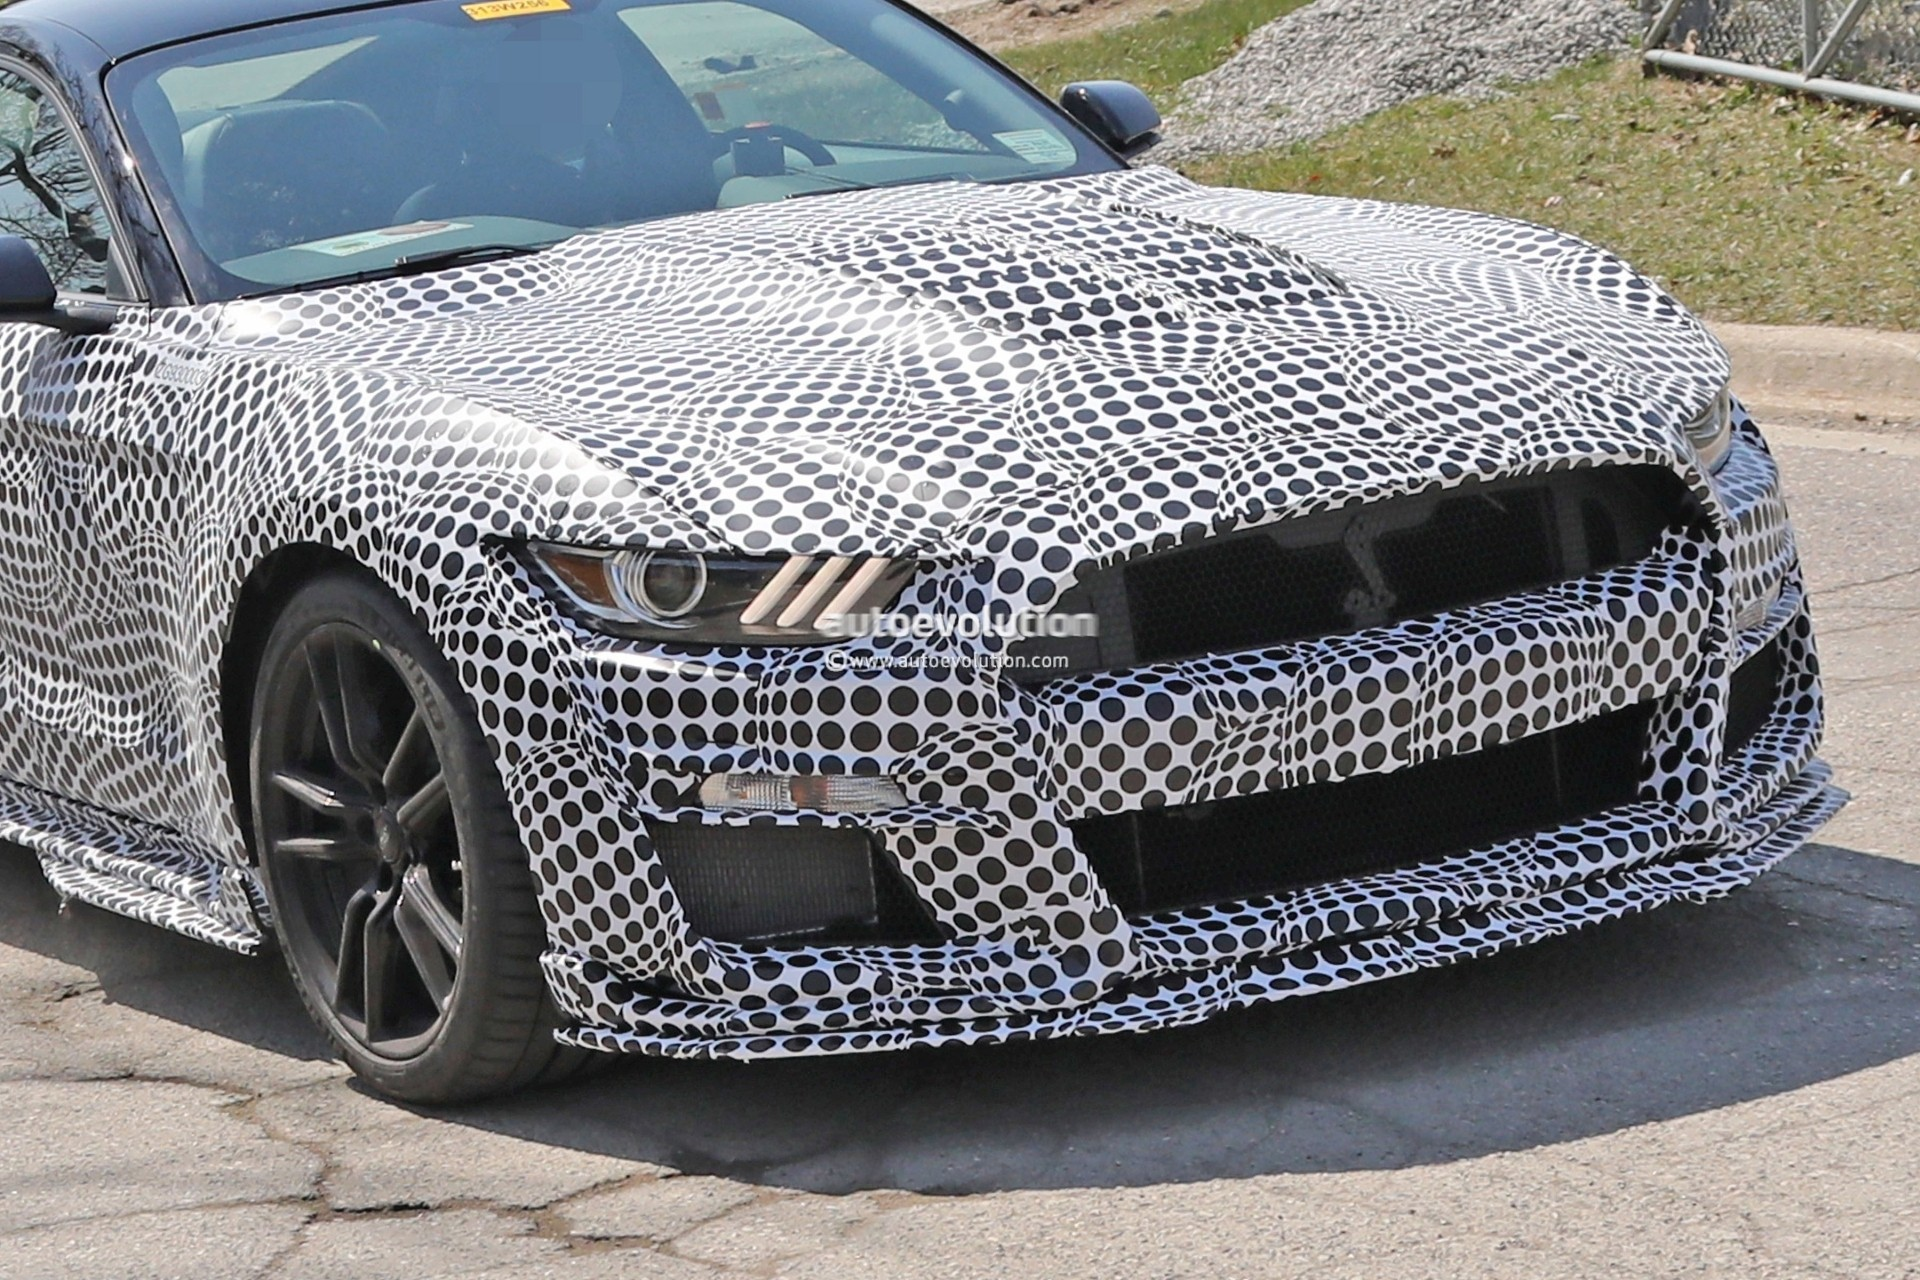 2020 Shelby GT500 Bird's-Eye Teaser Reveals the Obvious - autoevolution